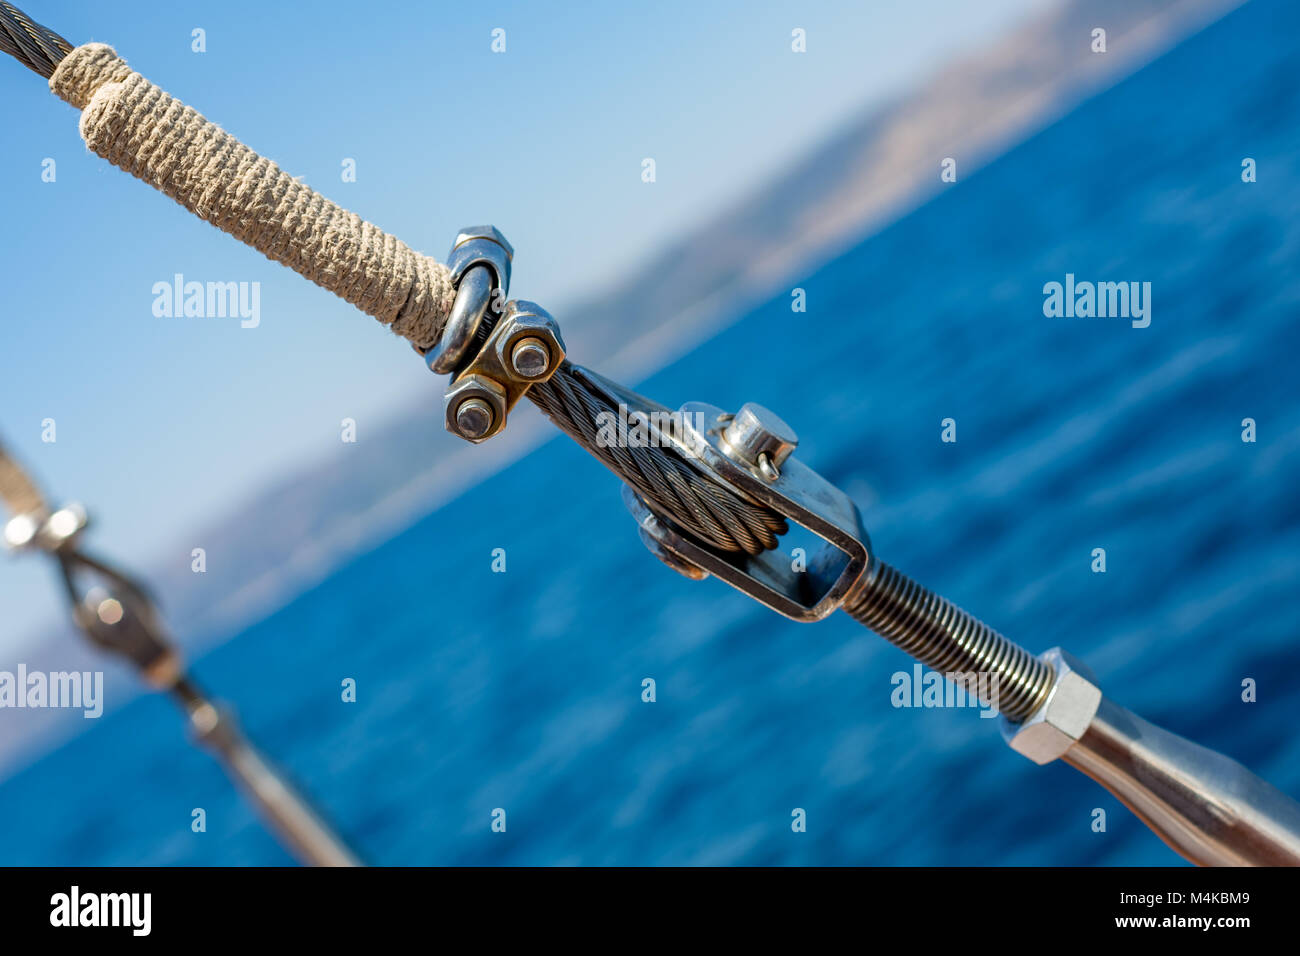 Diagonal ship metallic rope with nuts and bolts - Stock Image